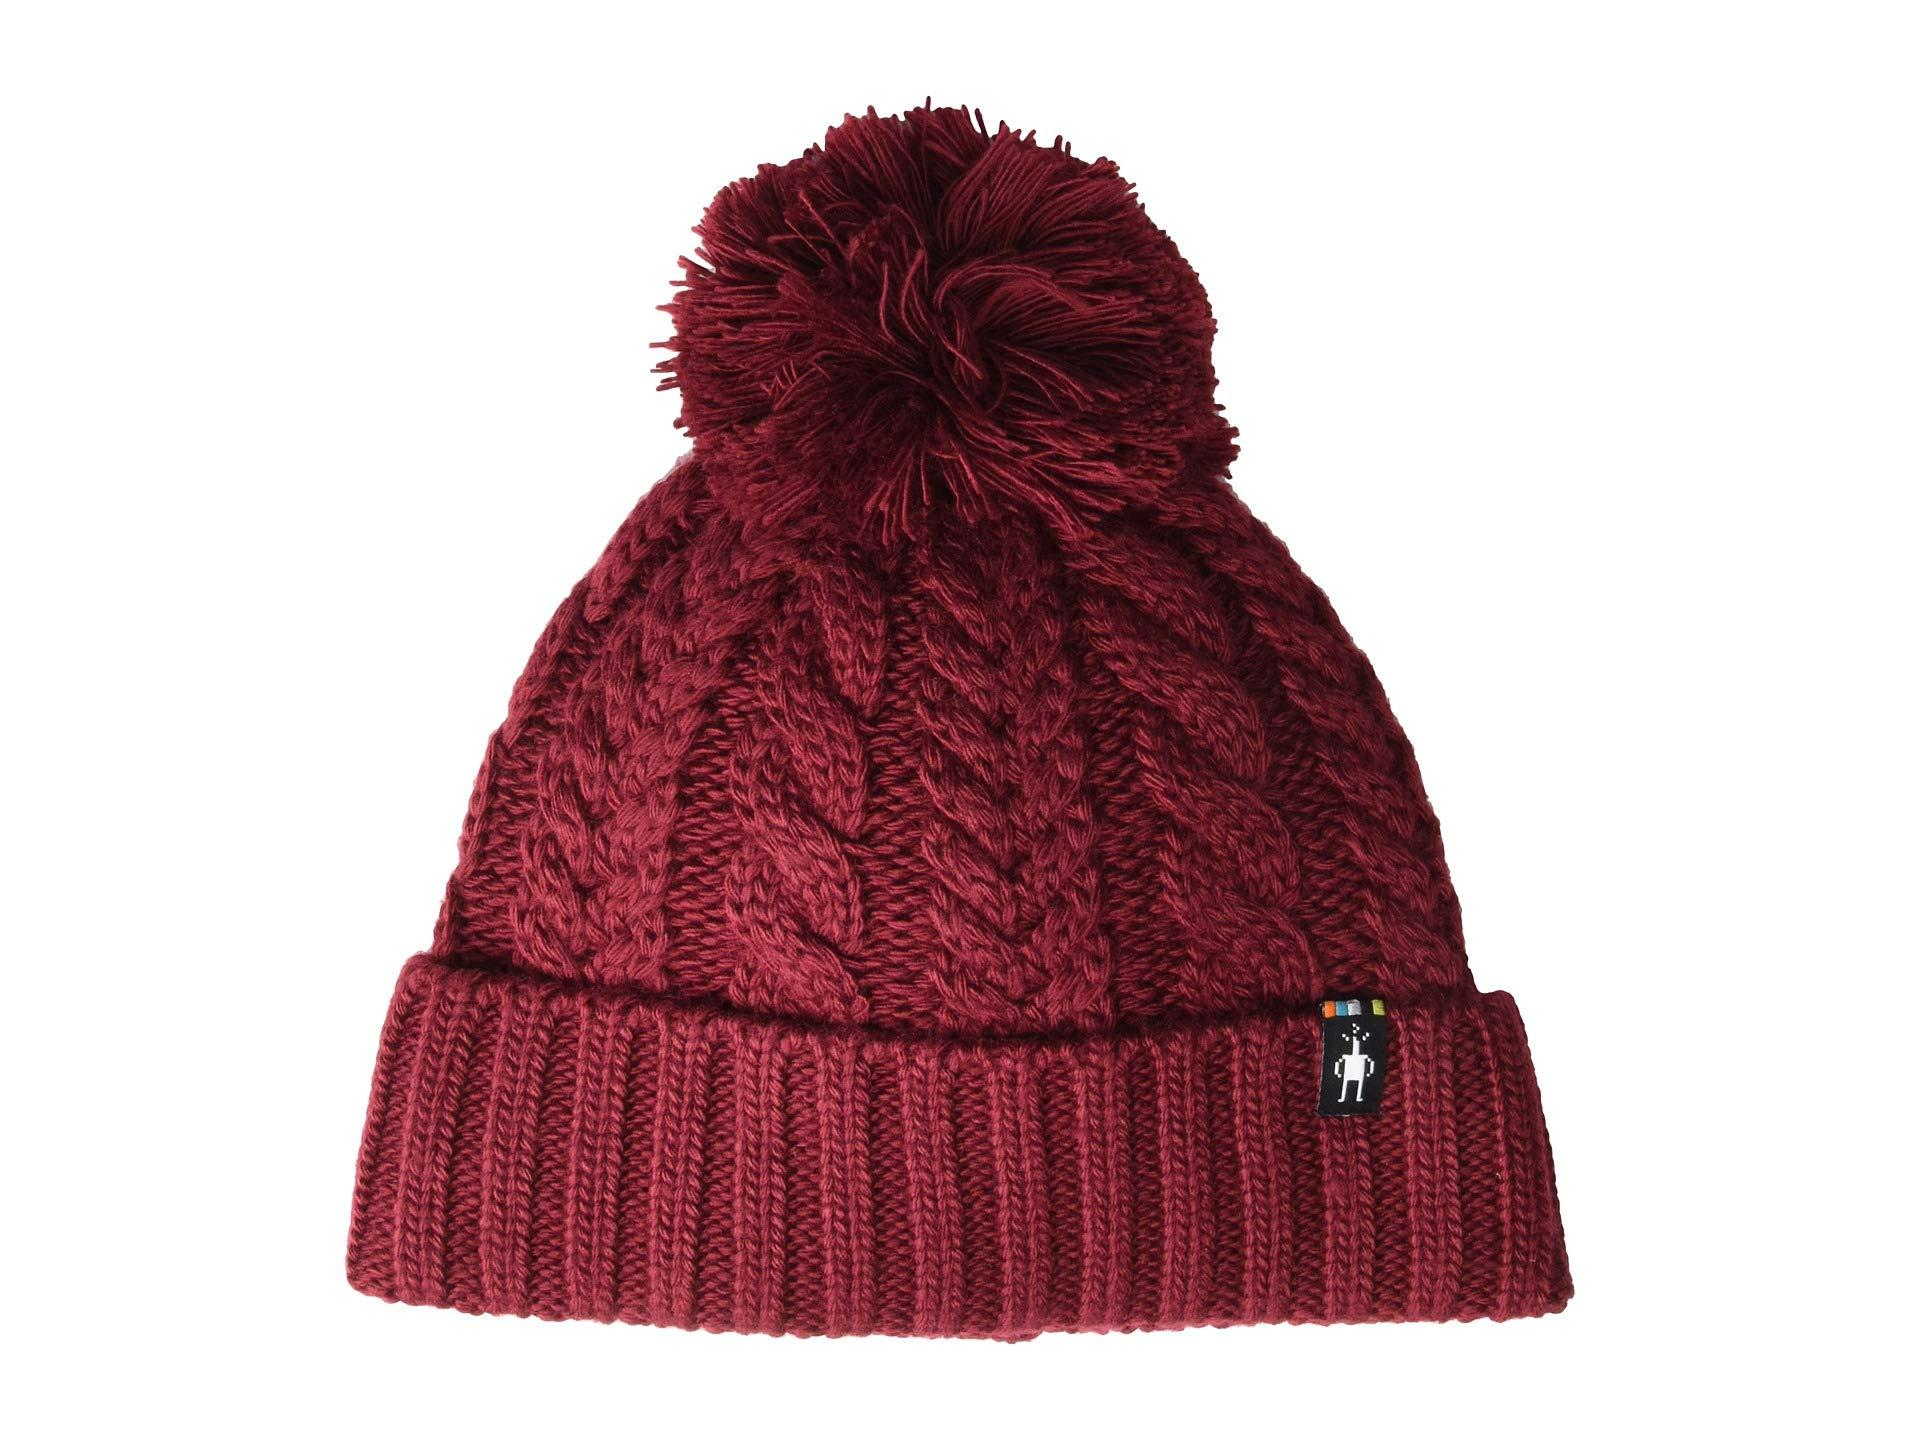 fd1f7b5ac04 Lyst - Smartwool Ski Town Hat in Red - Save 40%